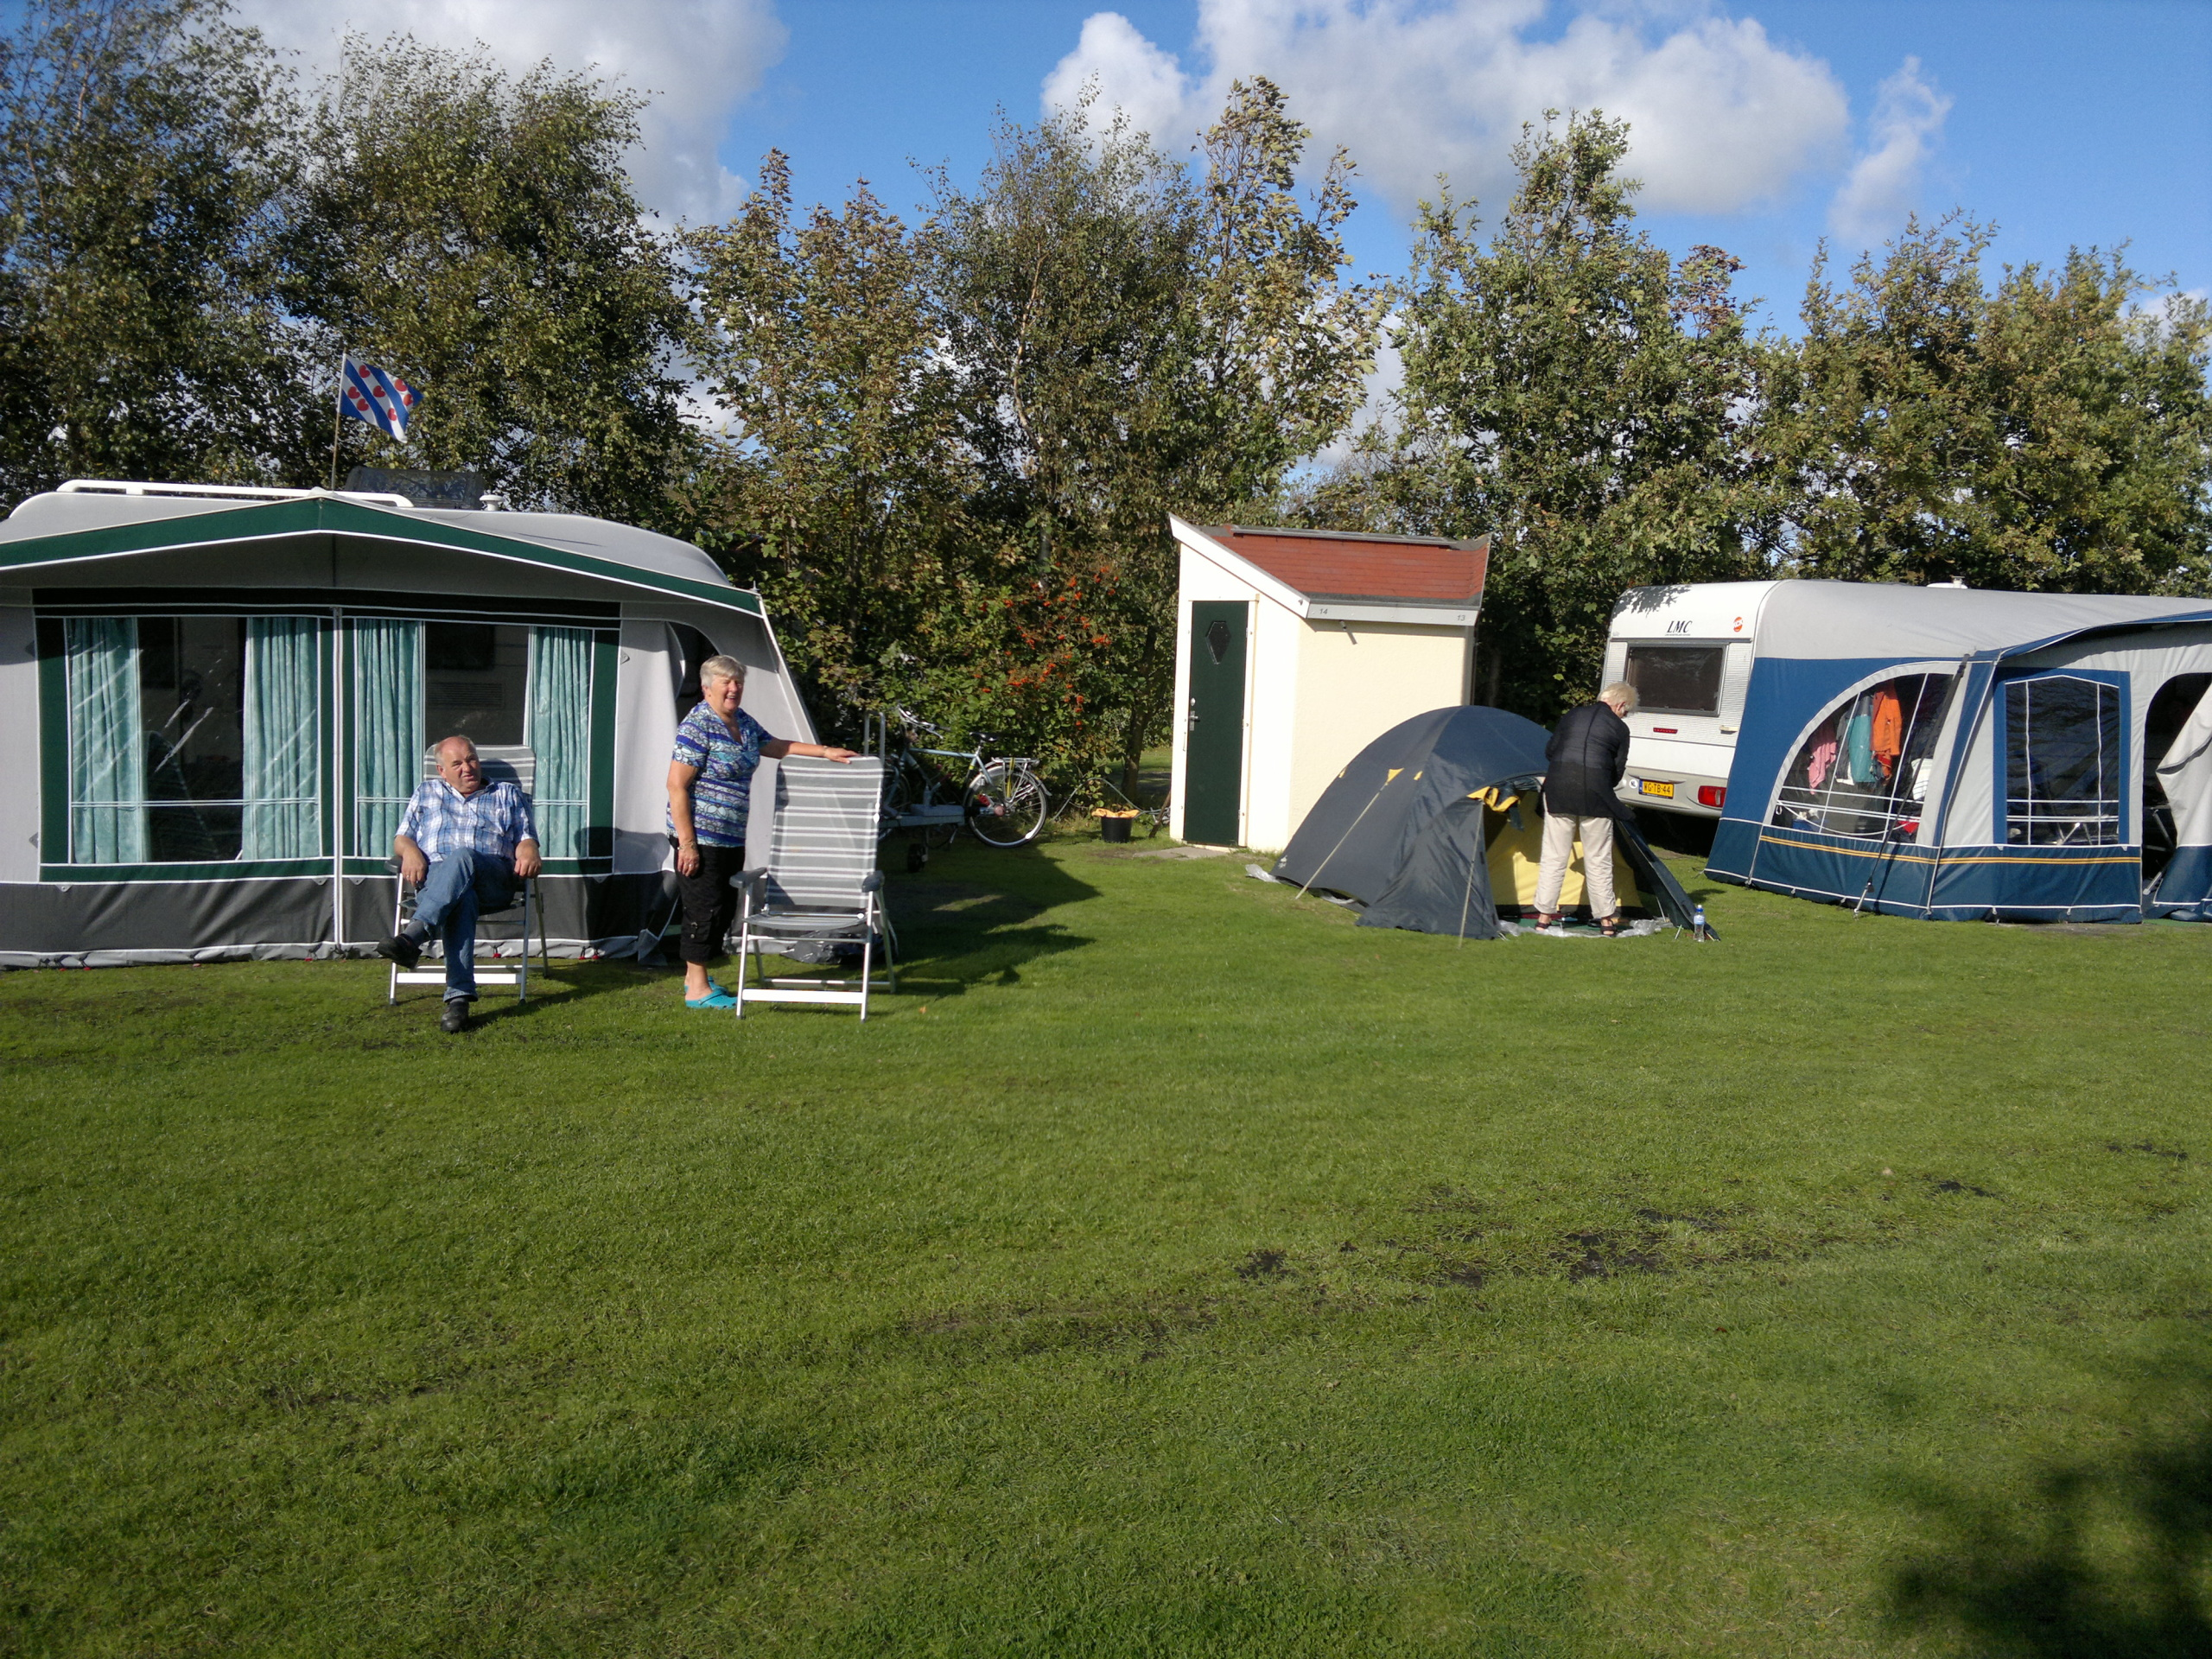 Camping in the middle of the nature of forest De Dennen with own sanitary unit for extra comfort